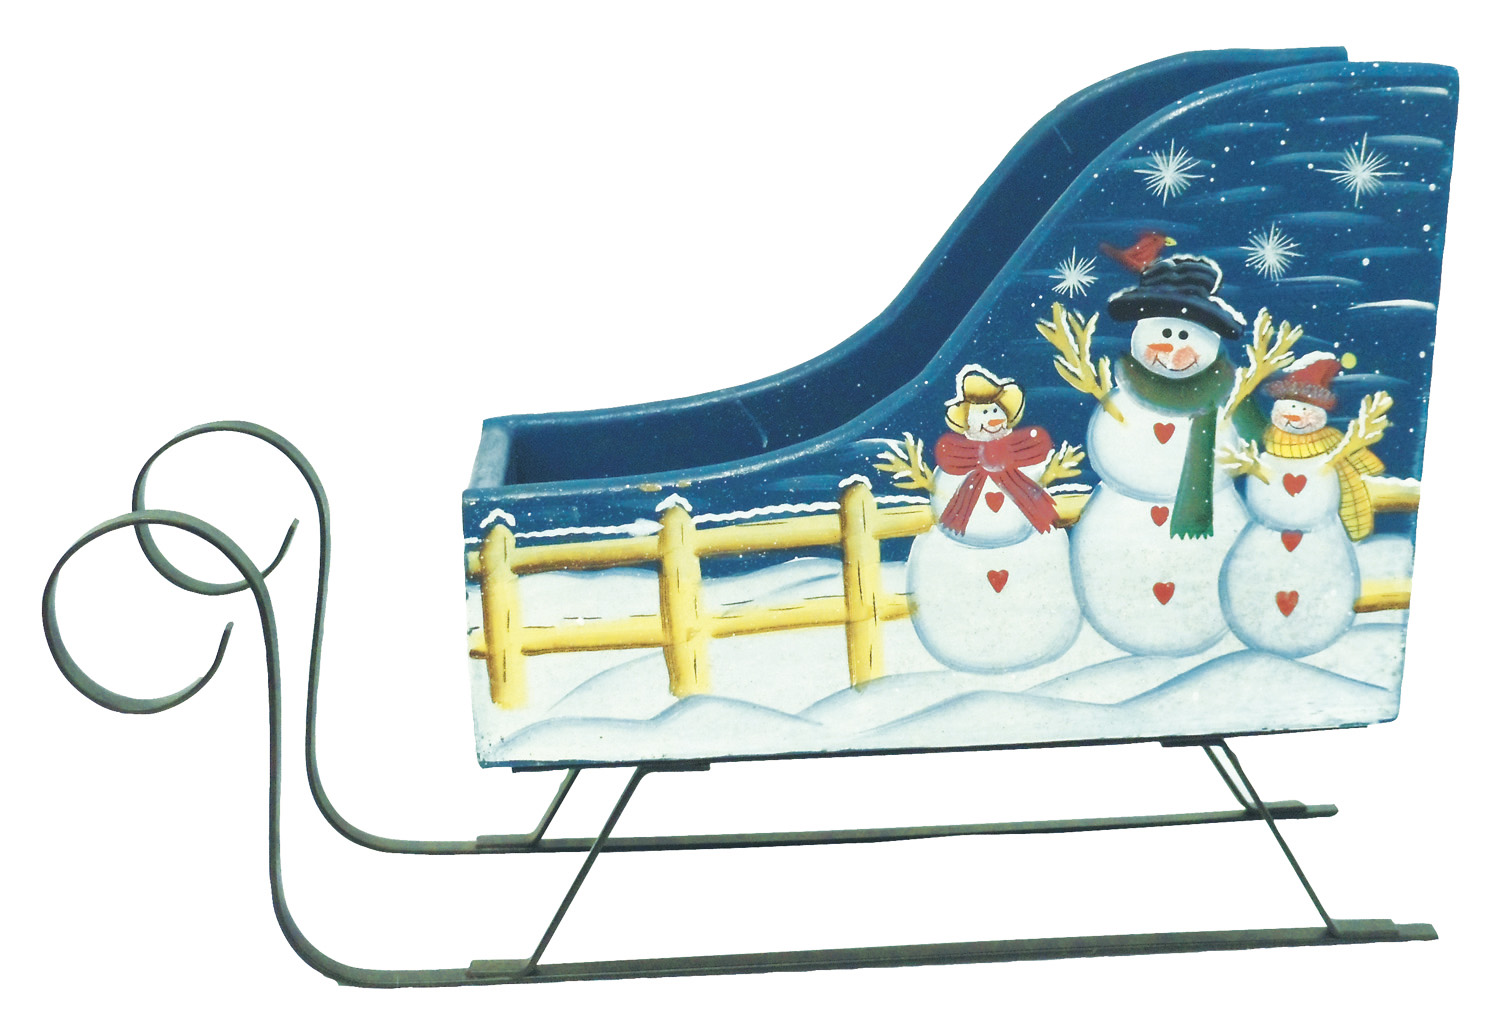 1256648 - Snow Family Hand Painted Wood Sleigh